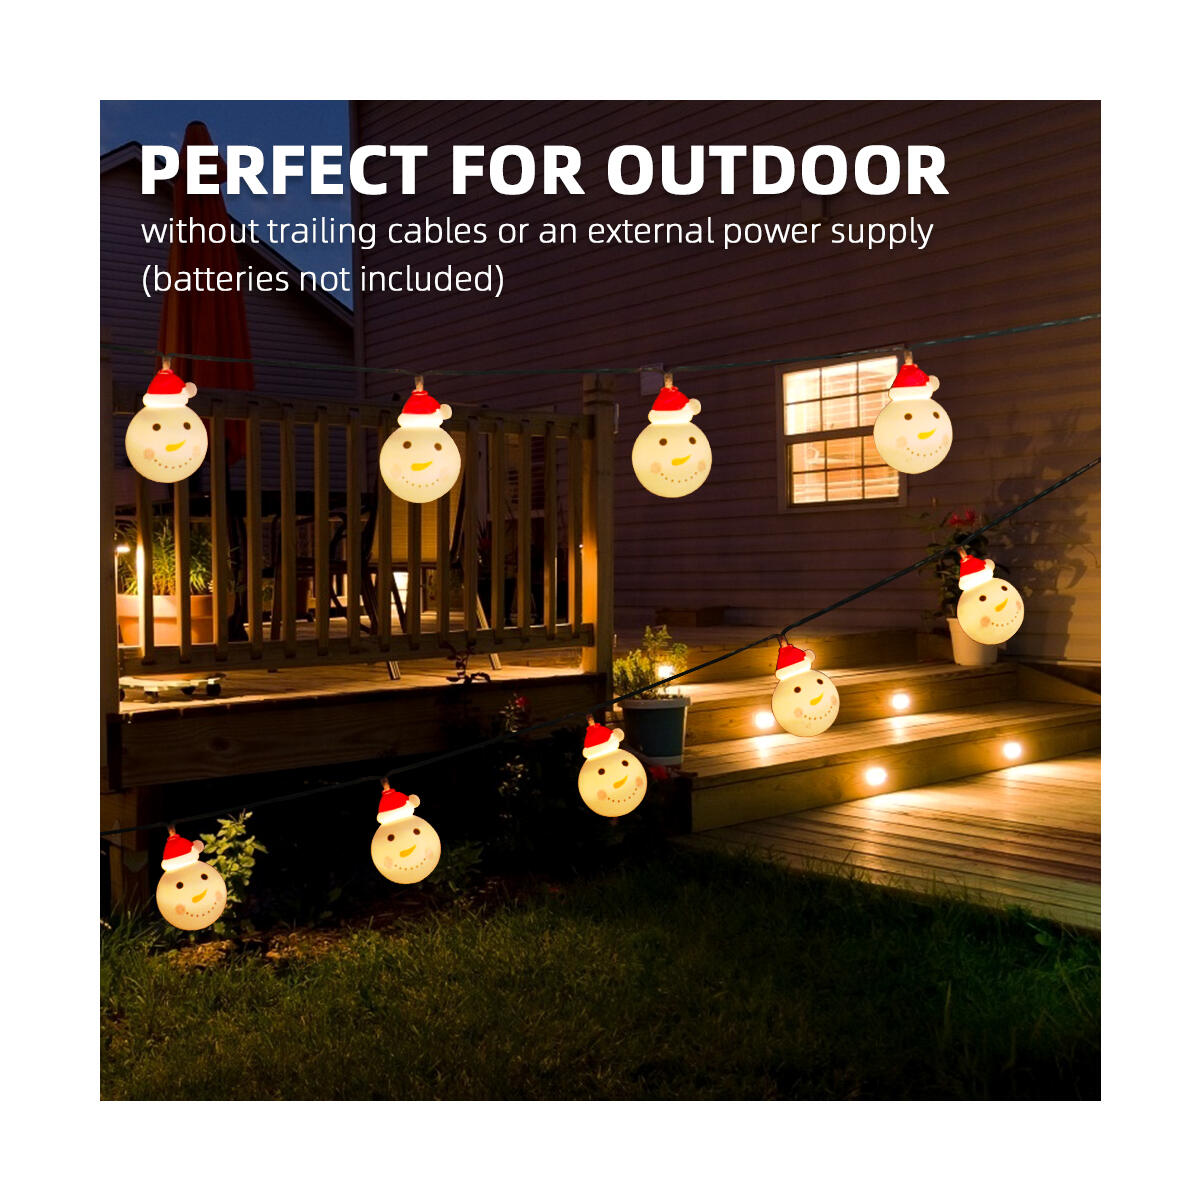 correare Christmas Snowman String Lights, Xmas Lights Waterproof 20 LED 9.84FT USB Powered Cute String Lightsfor Christmas Decoration, Christmas Tree, Home, Garden, Party (Warm White)